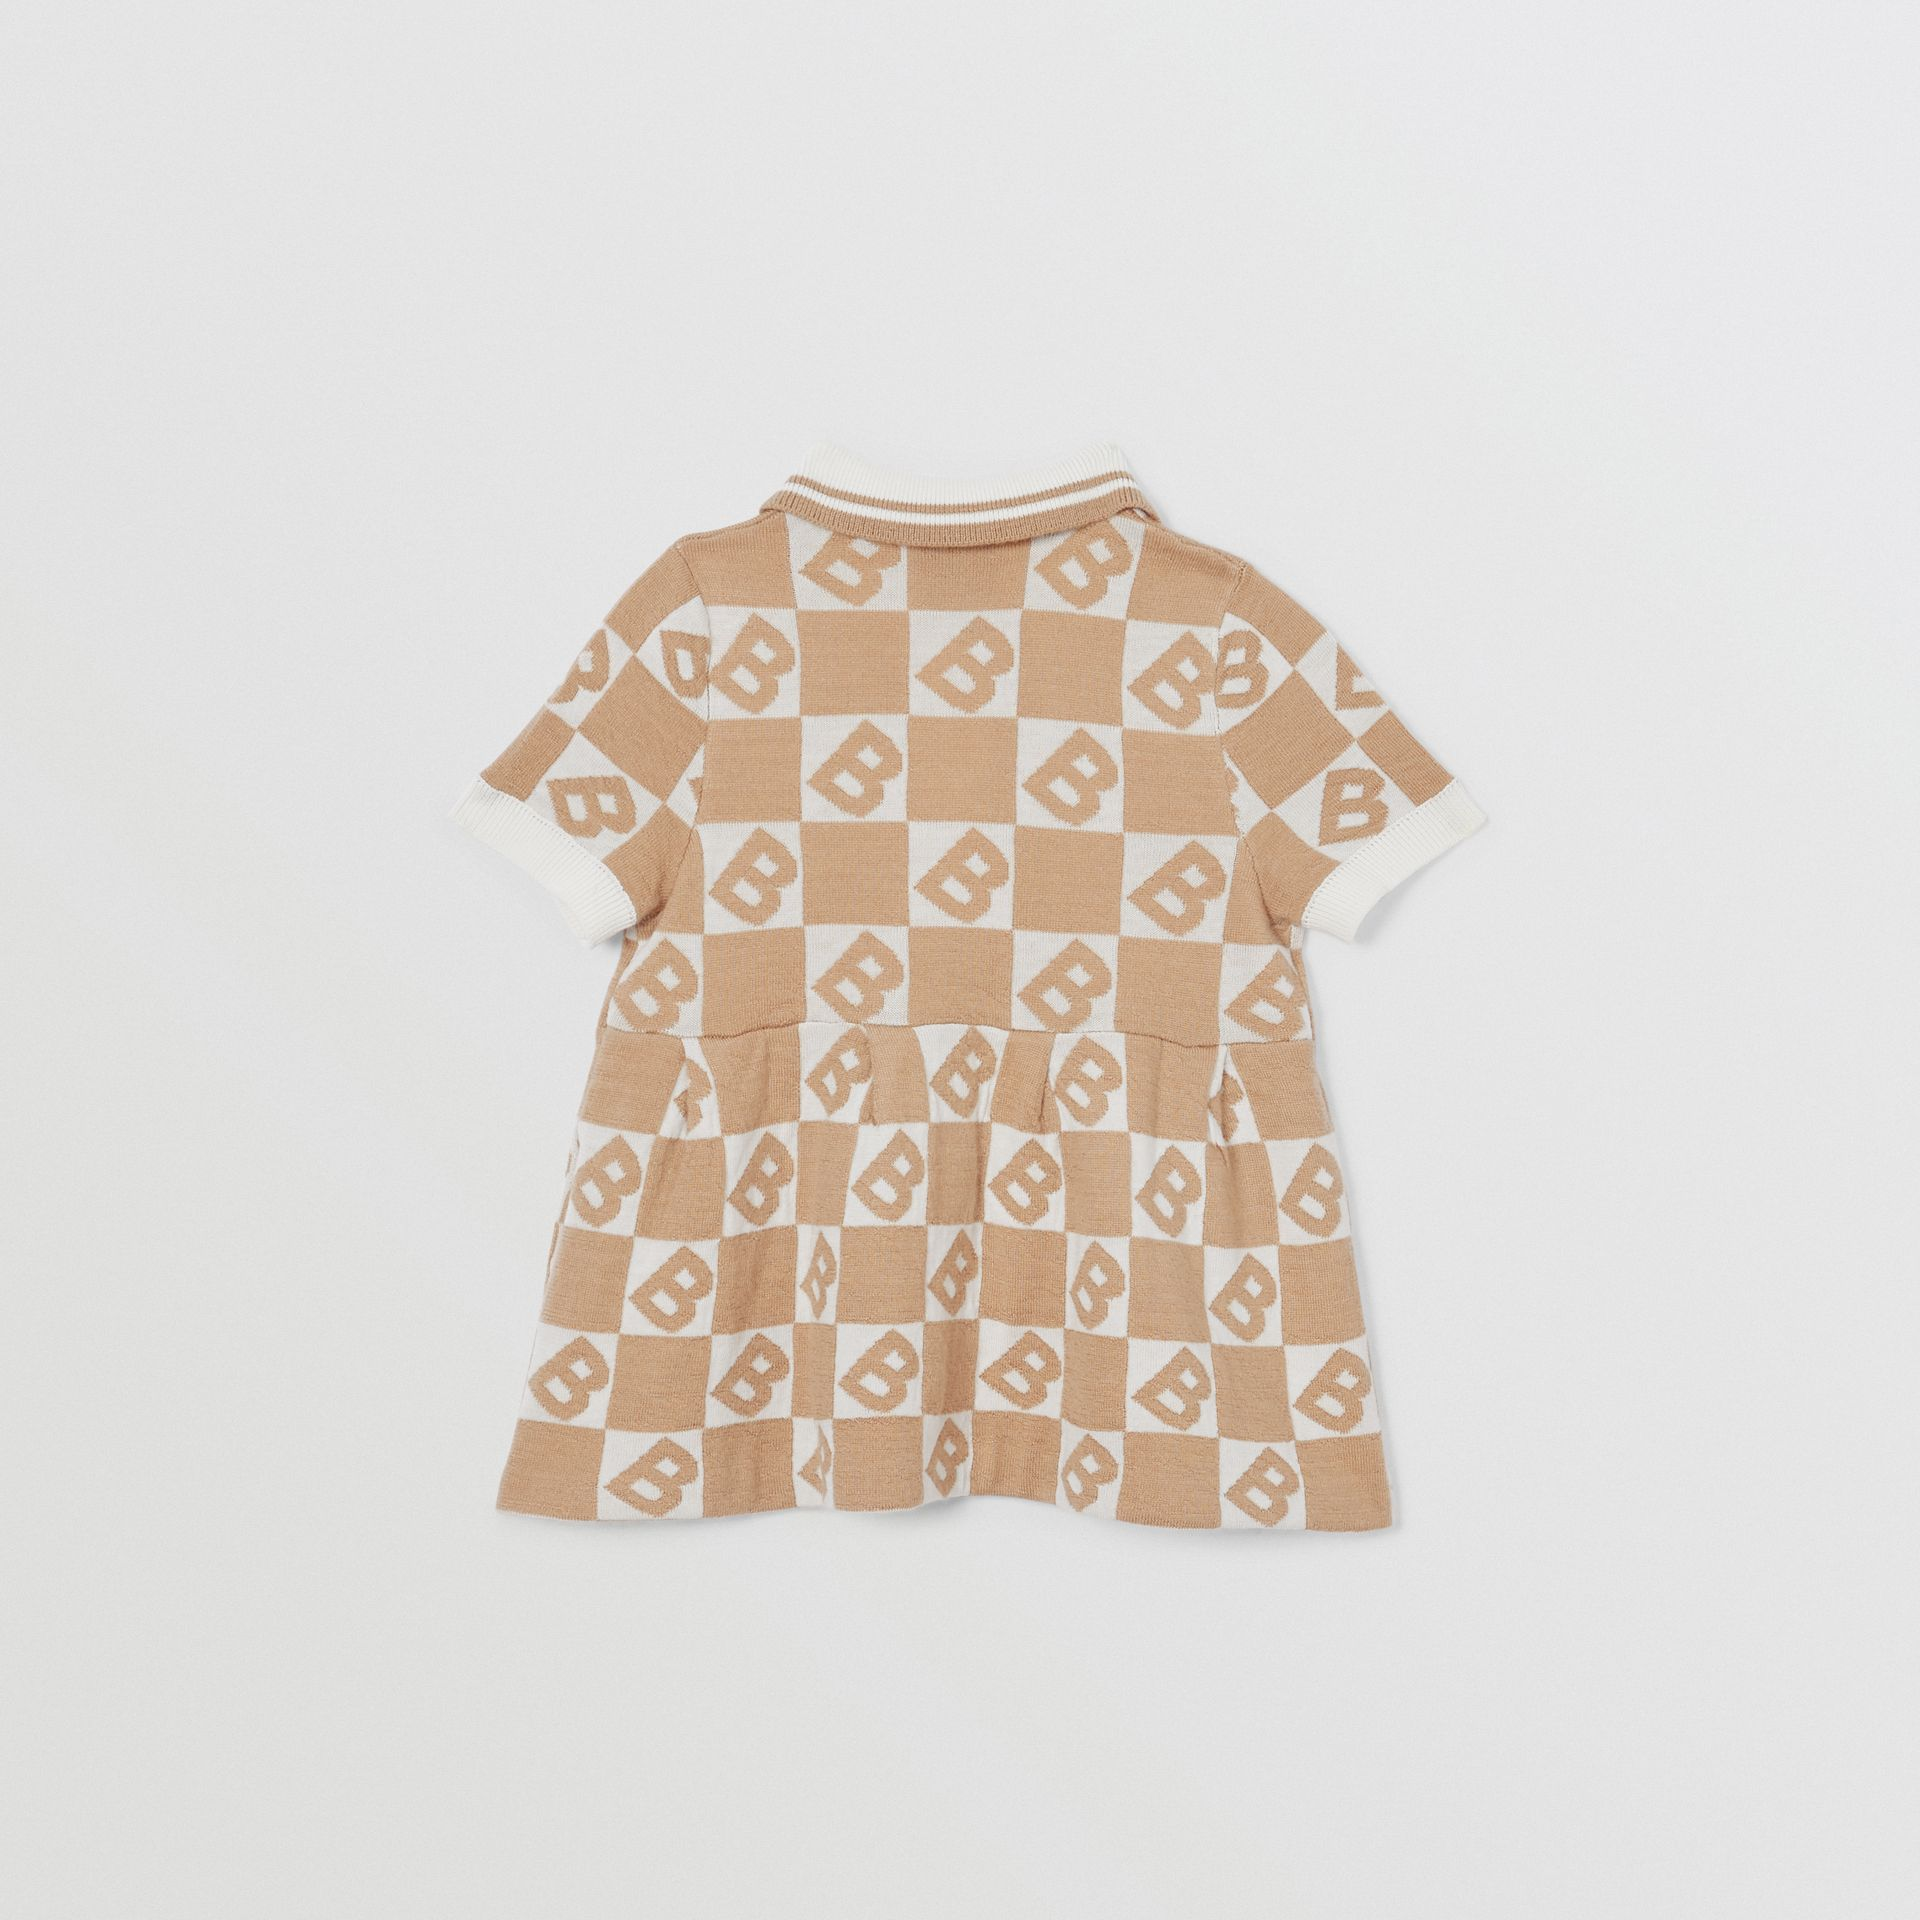 B Motif Cotton Merino Wool Cashmere Dress in Light Camel - Children | Burberry - gallery image 3